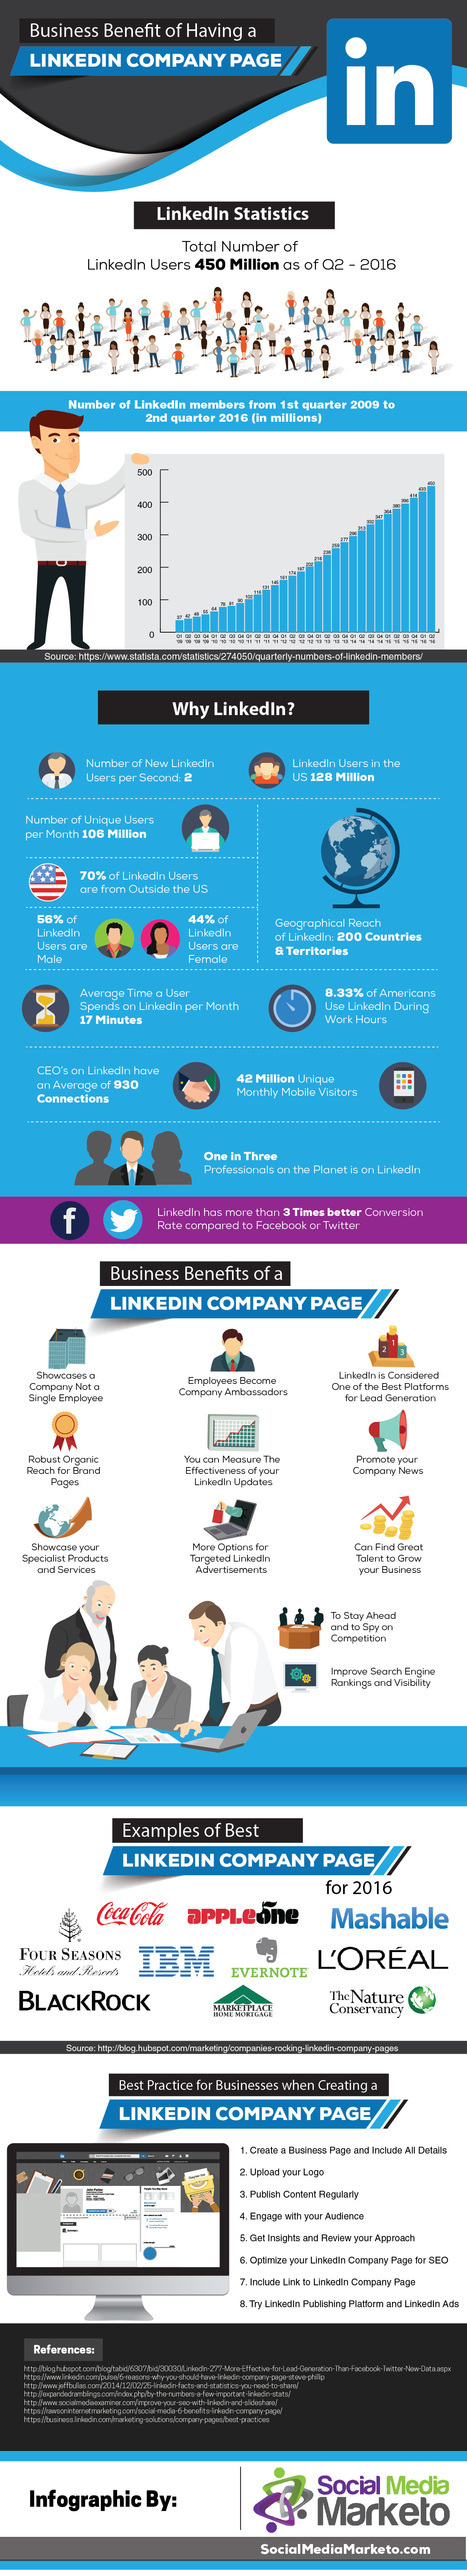 The Business Benefits of a LinkedIn Company Page | Business Support | Scoop.it